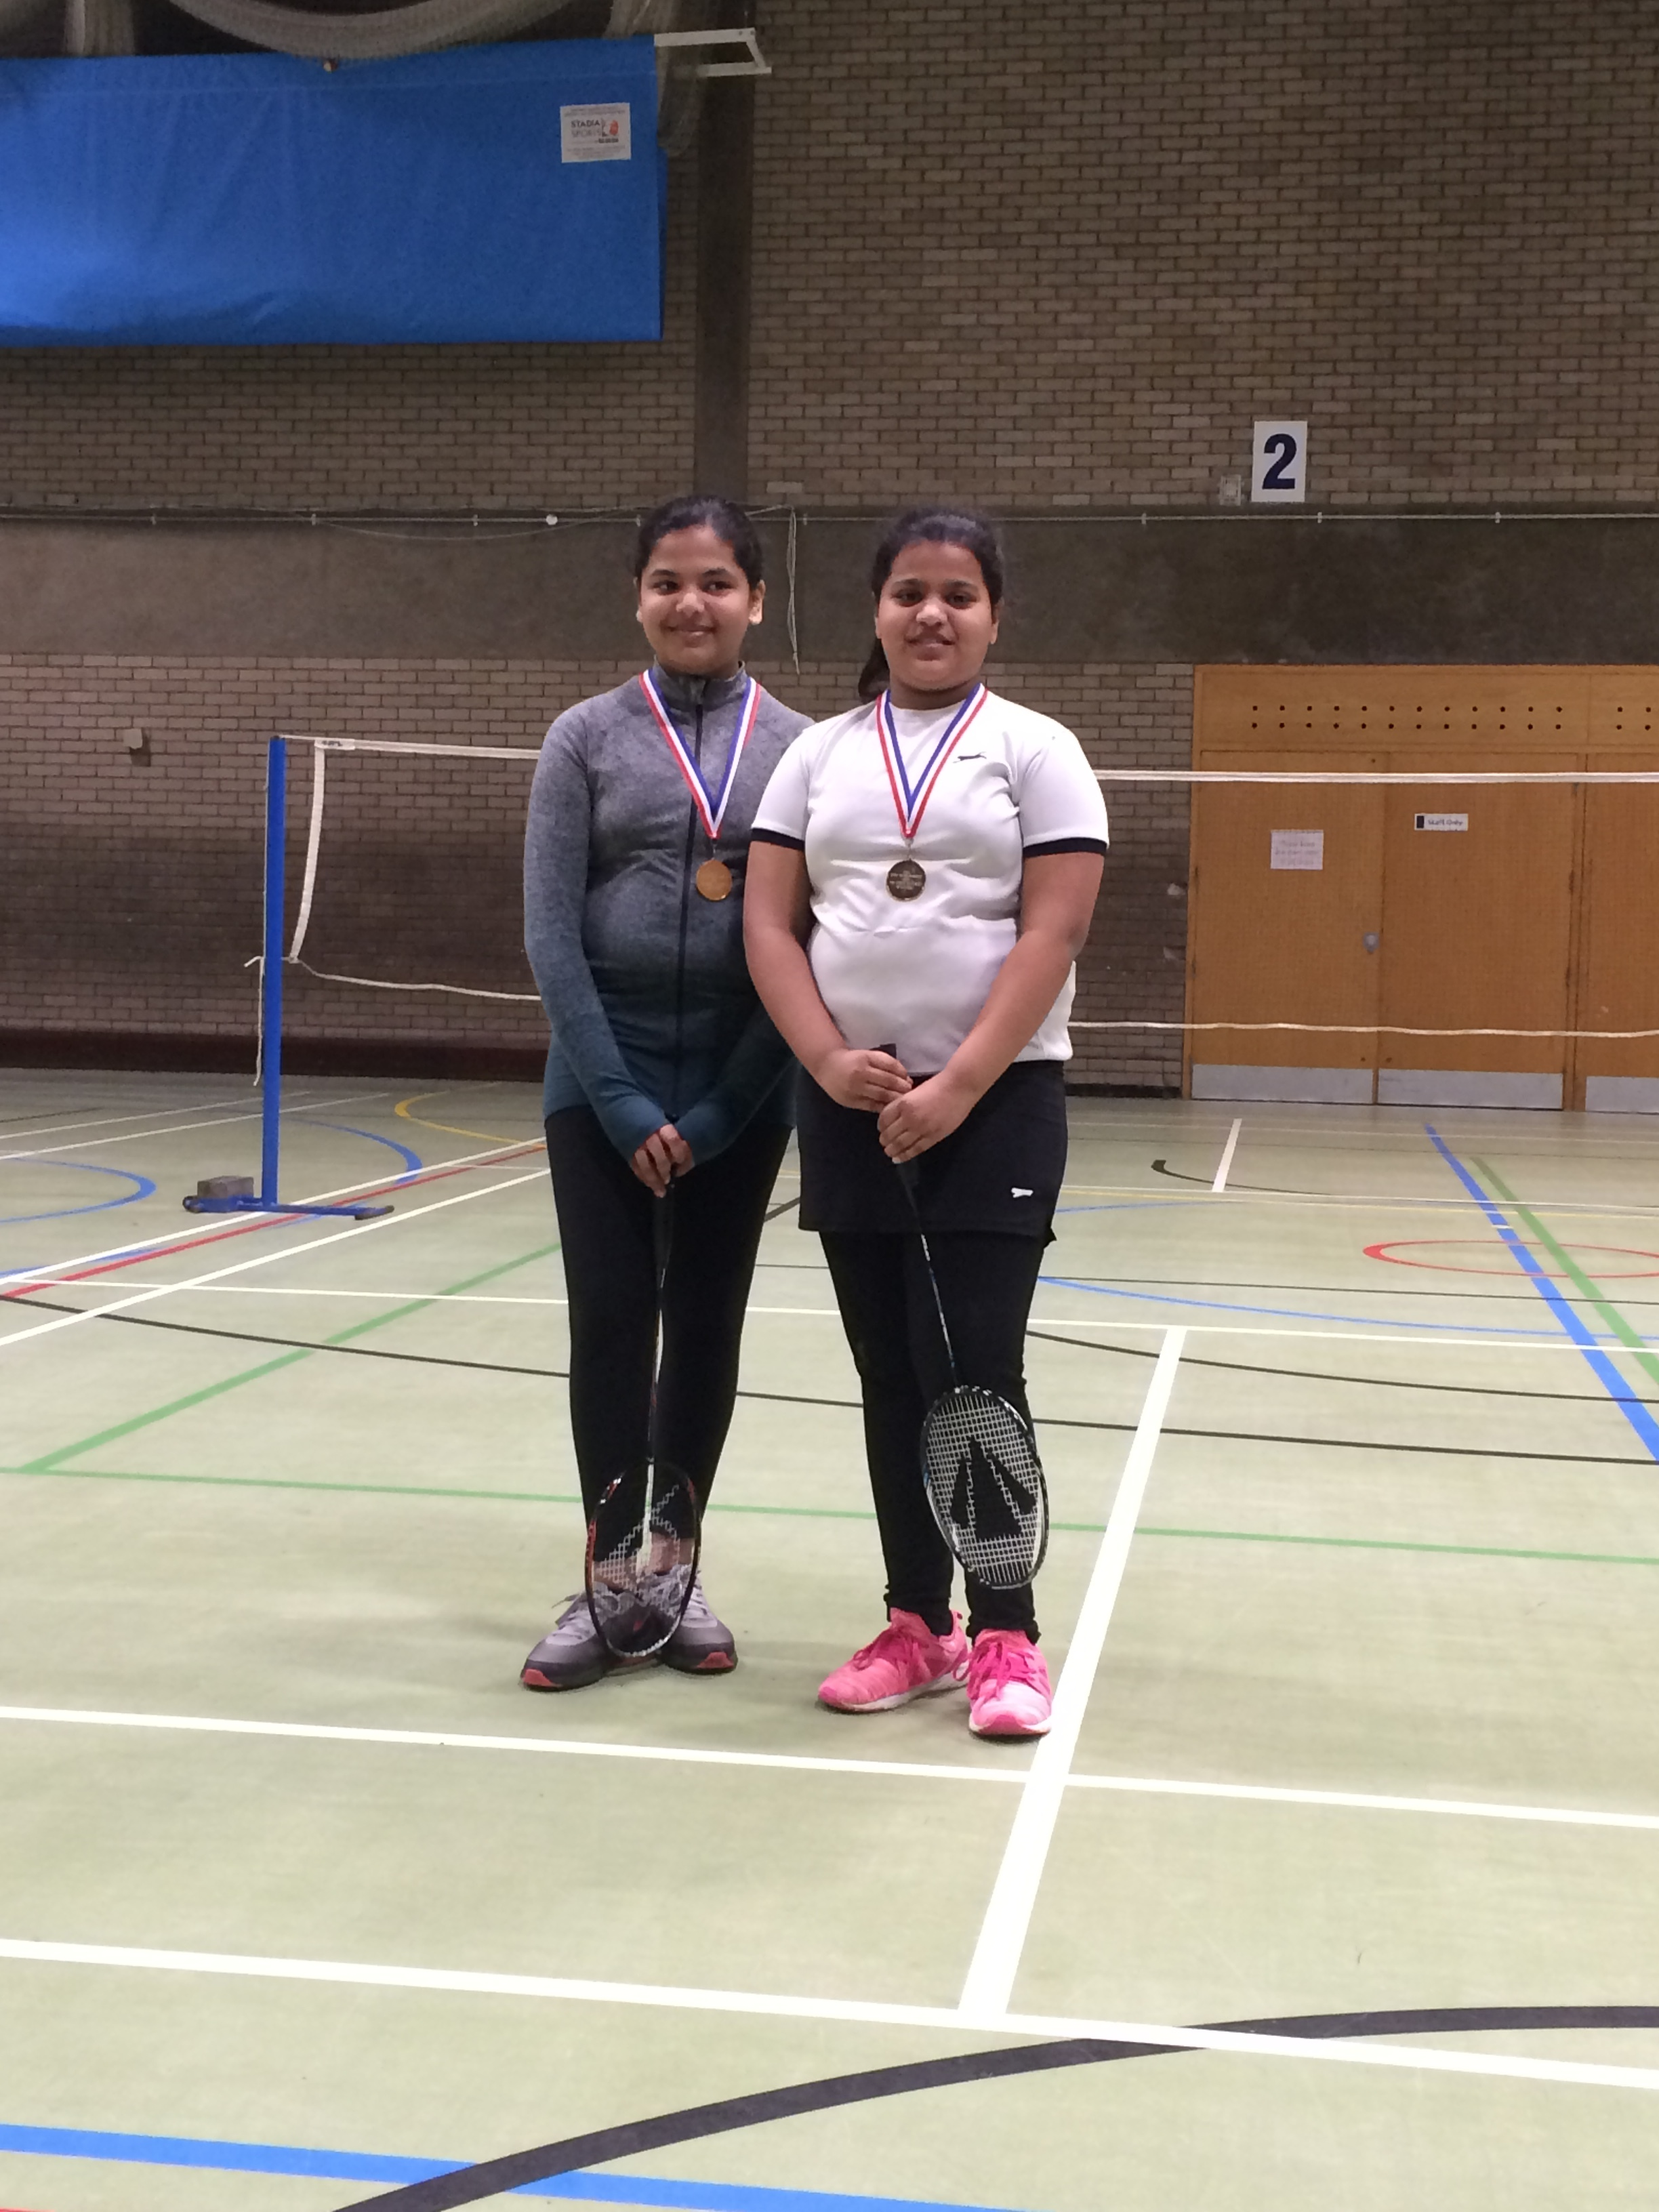 U11 & u13 girls doubles winners: Niveditha Kesavaraj/Kasuma Anchi